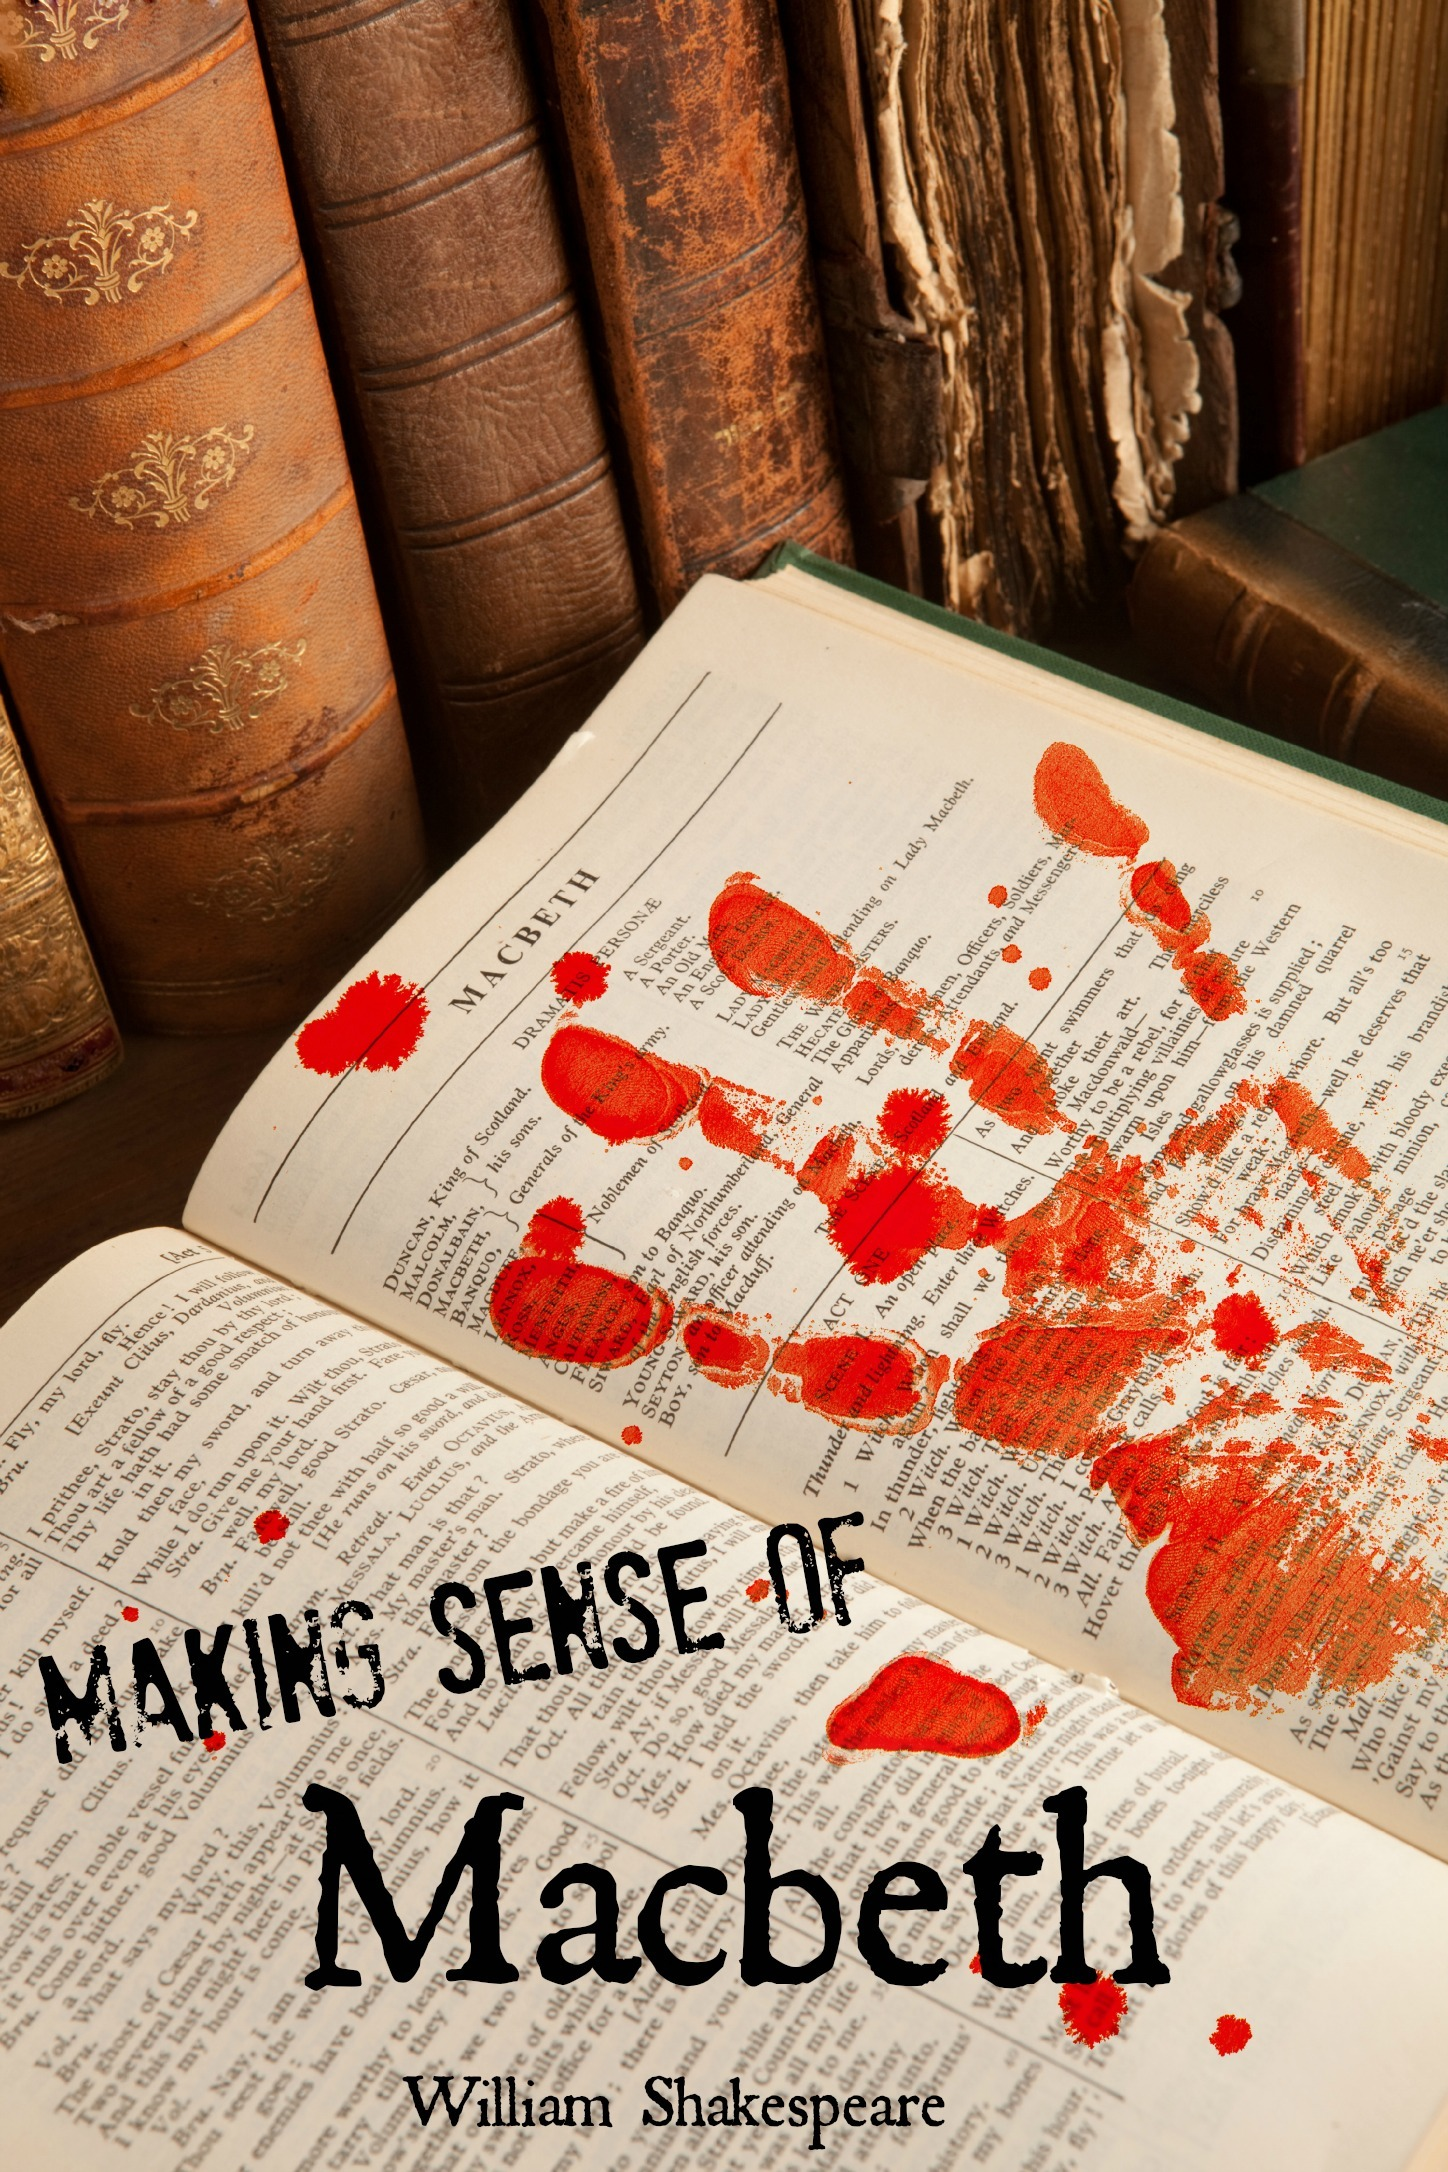 BookCaps - Making Sense of Macbeth! A Students Guide to Shakespeare's Play (Includes Study Guide, Biography, and Modern Retelling)